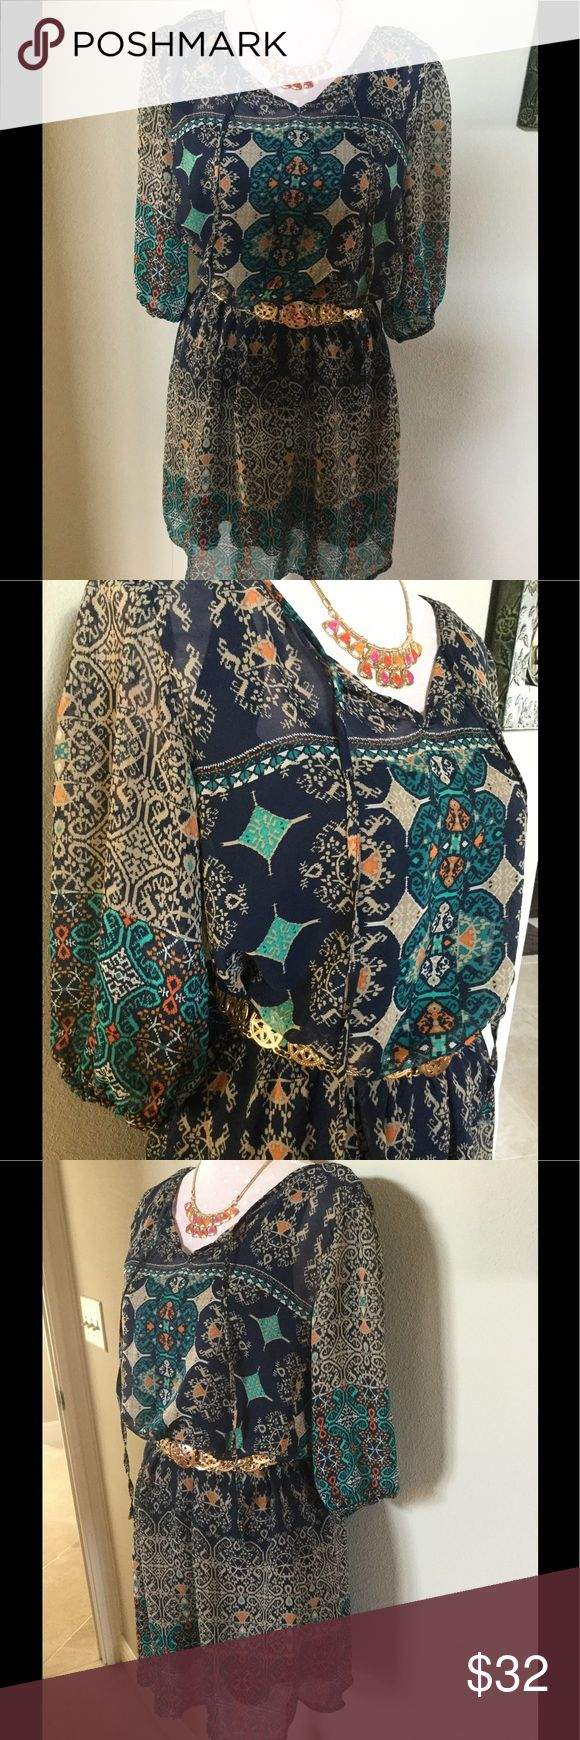 Body Central Floral Print Dress Size Large Body Central Floral Print Dress Size Large EUC! This dress has a semi attached dark blue tank styled slip underneath, perfect for the summer time, belt and necklace are NOT included Body Central Dresses